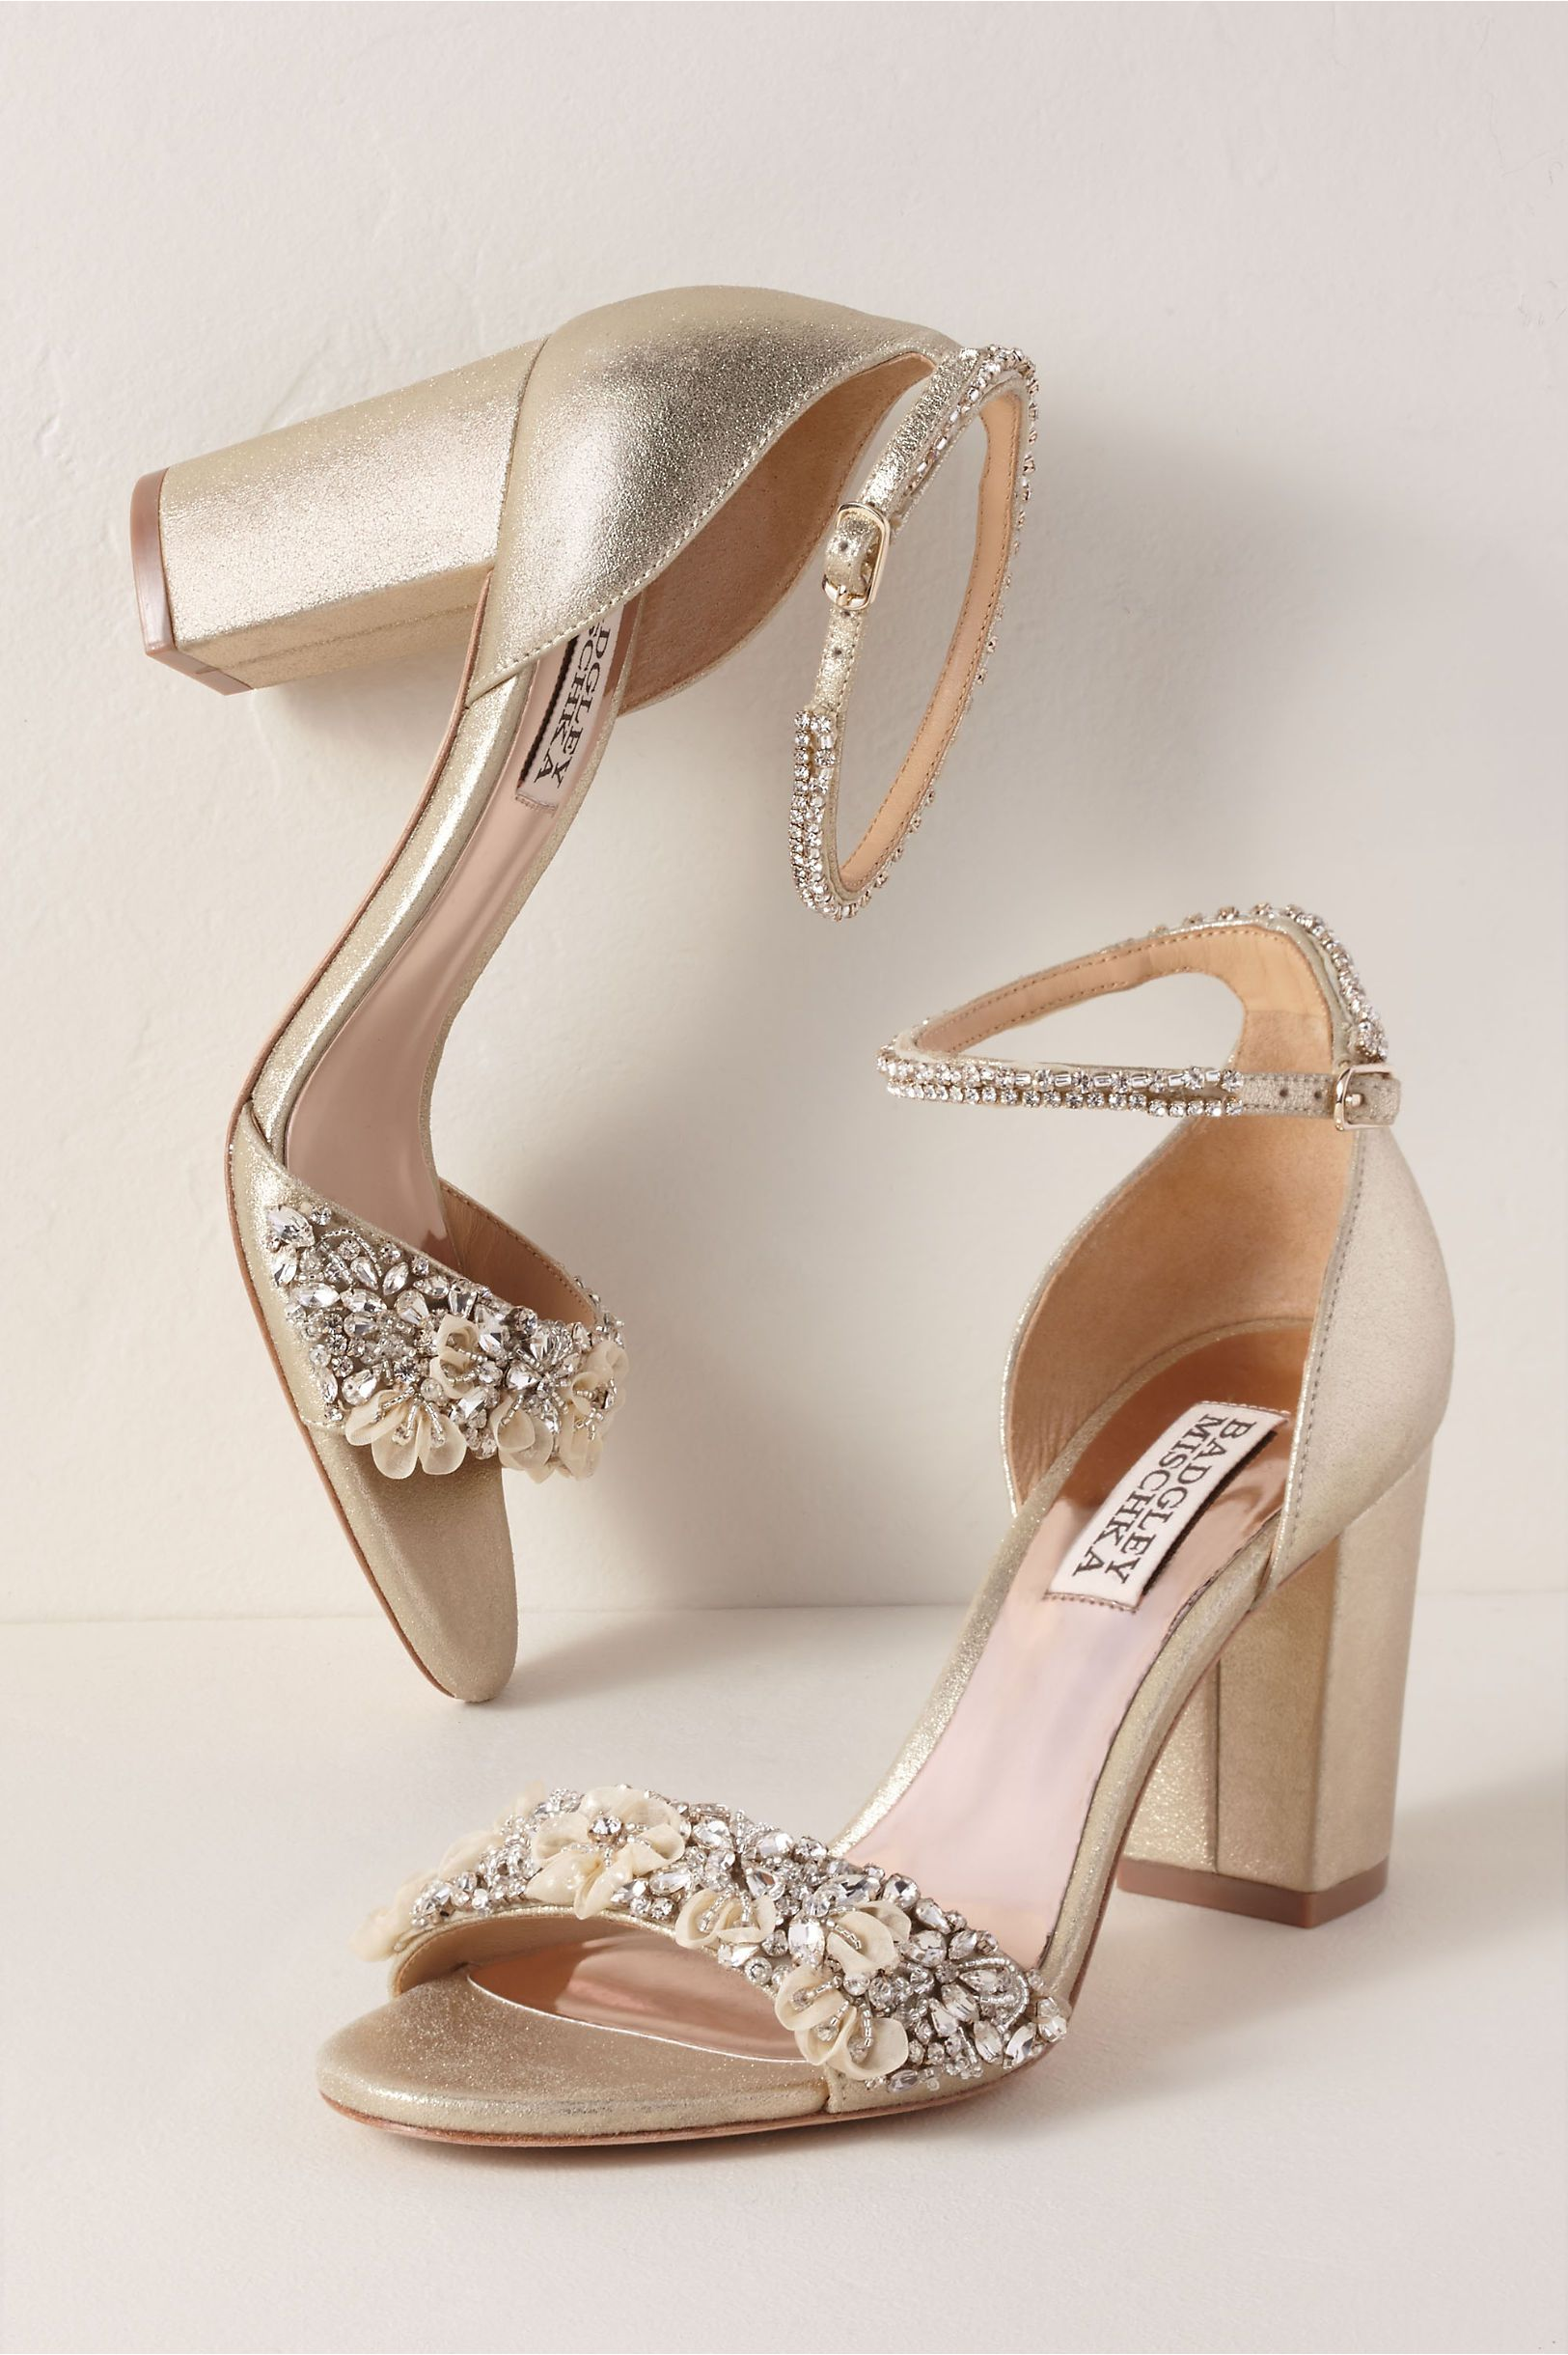 ba02d697849 BHLDN s Badgley Mischka Badgley Mischka Finesse Ii Heels in Neutral